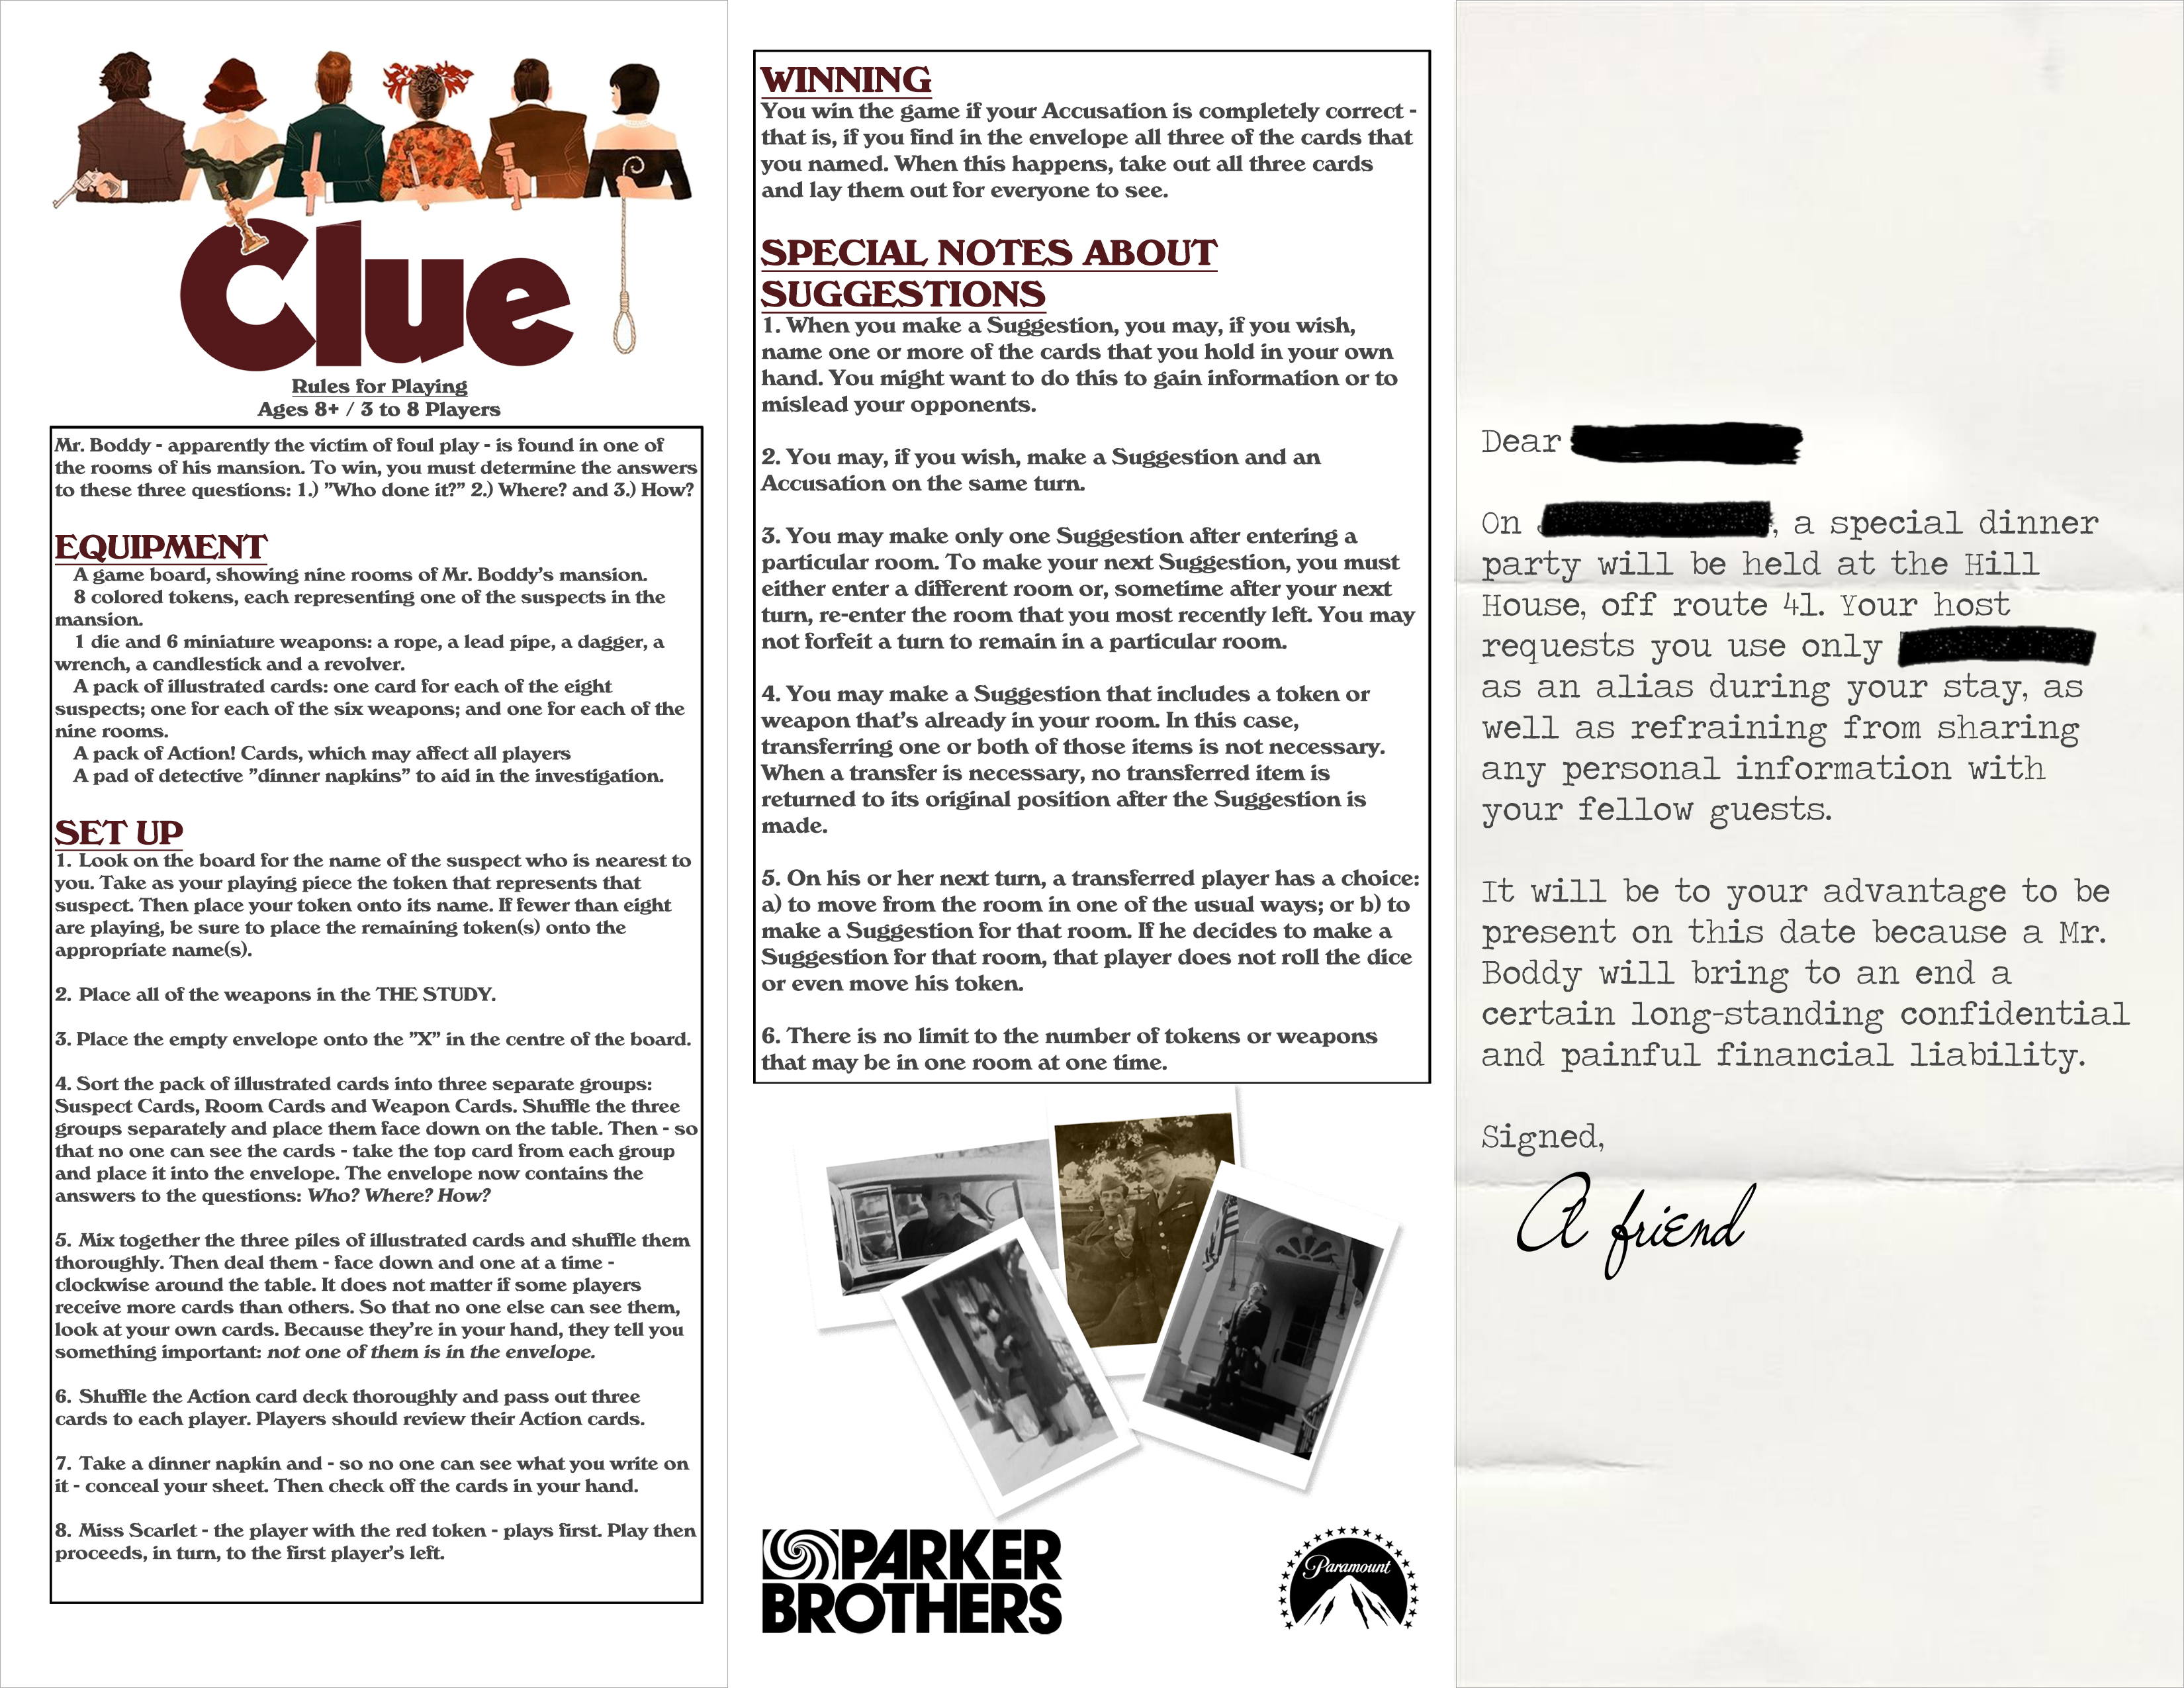 Letter-Sized-Trifold-for-Clue-Rules-SIDE-1xx.jpg